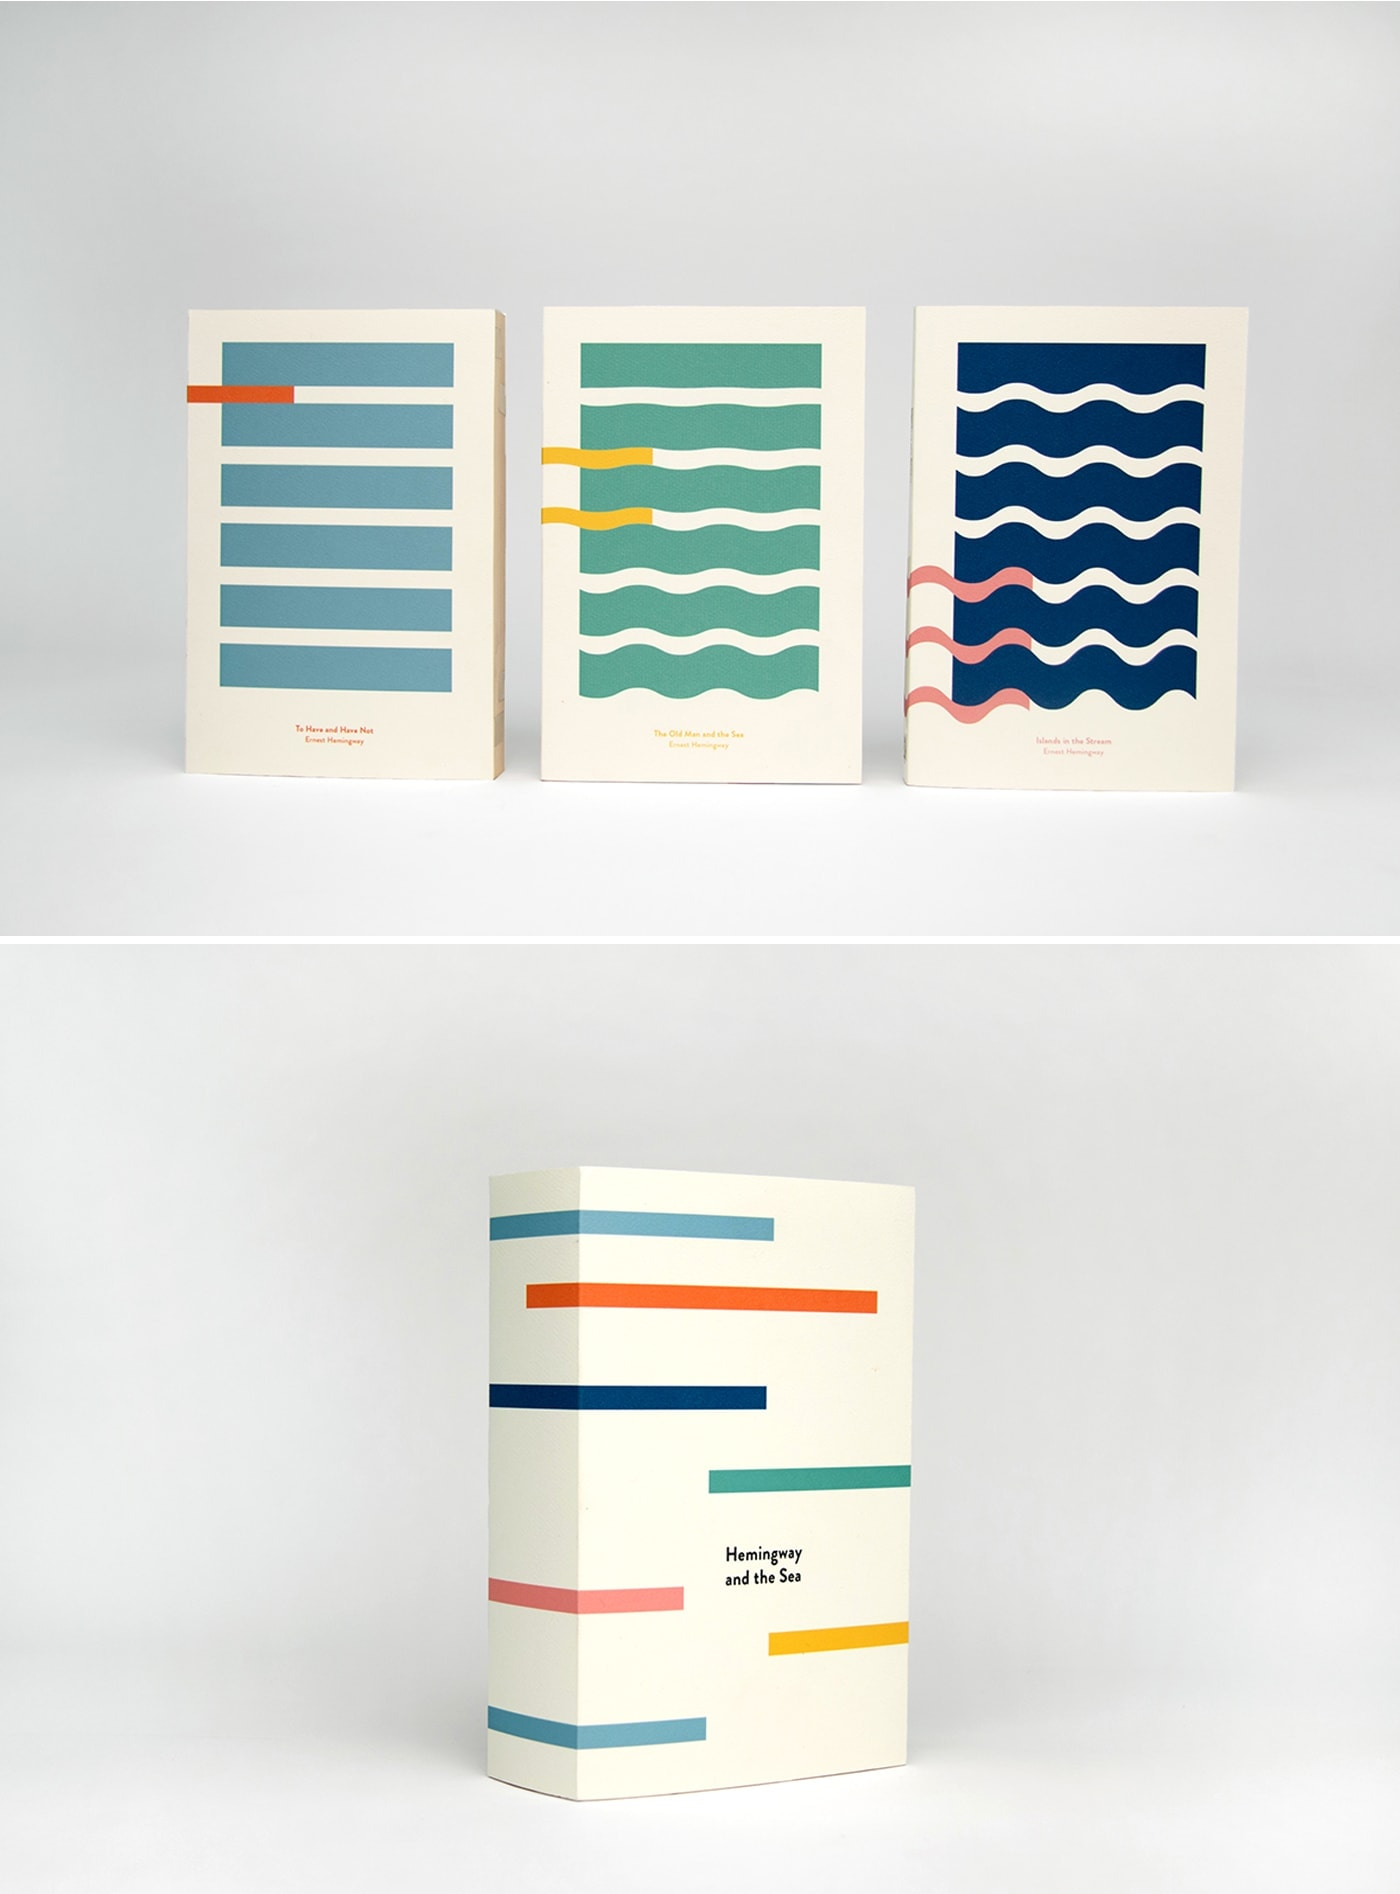 hemmingway and the sea book covers